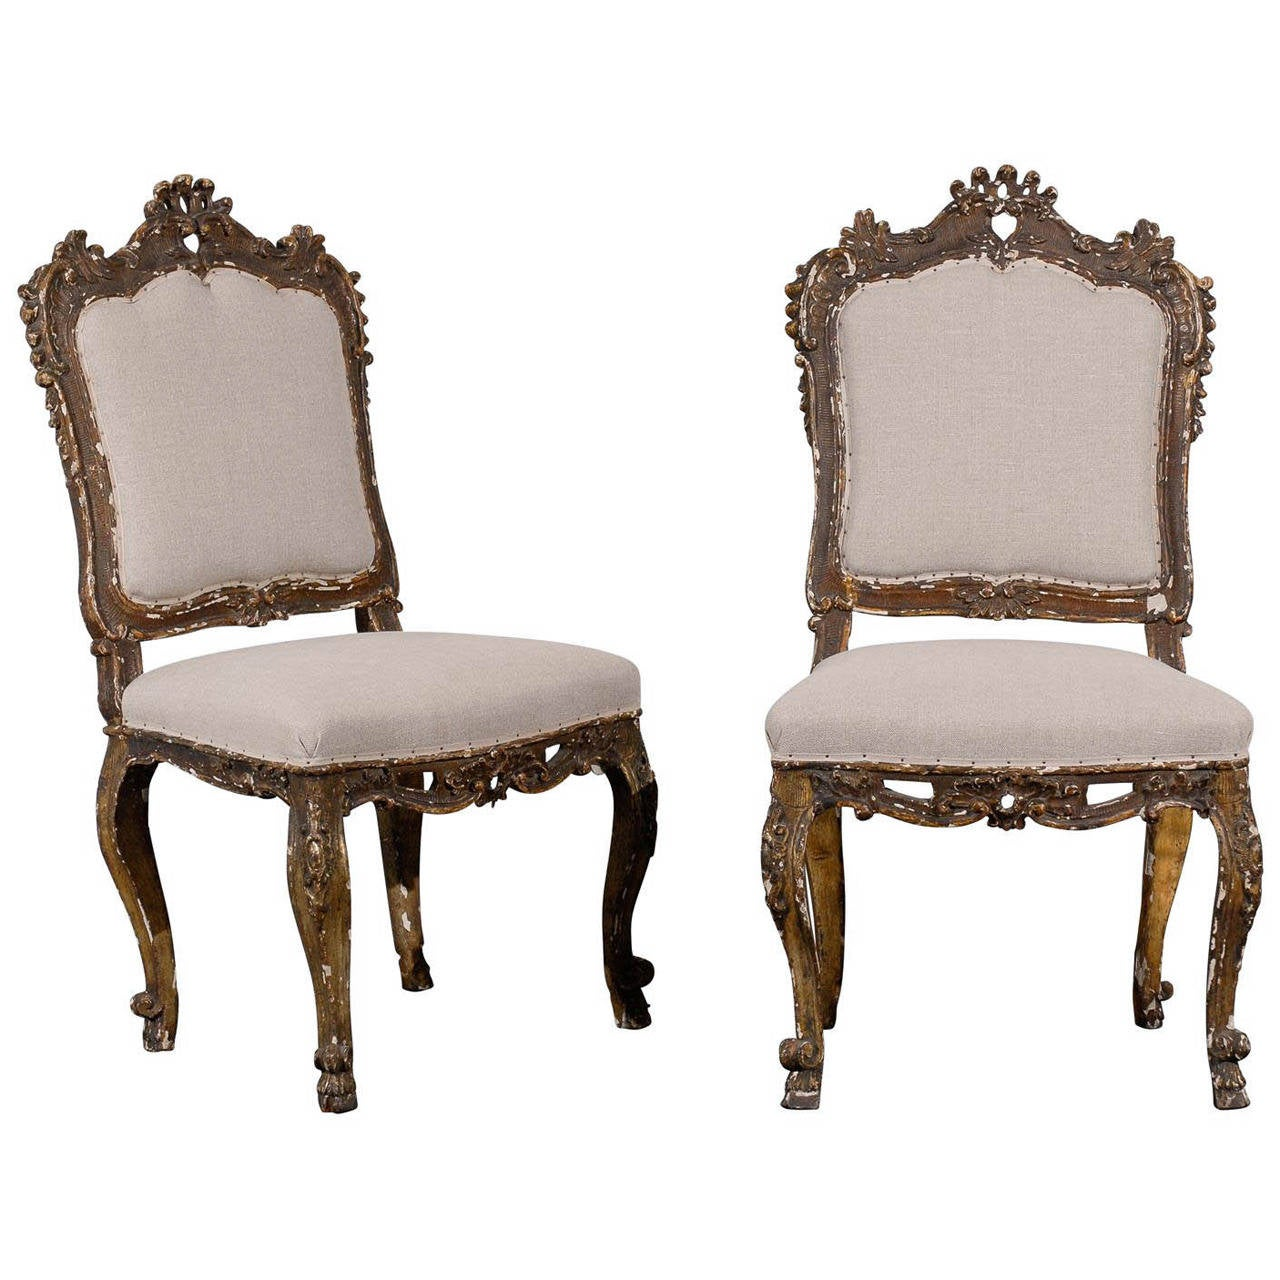 Pair Of Italian Ornate, 18th Century Venetian Style Side Chairs With Nice  Aging 1